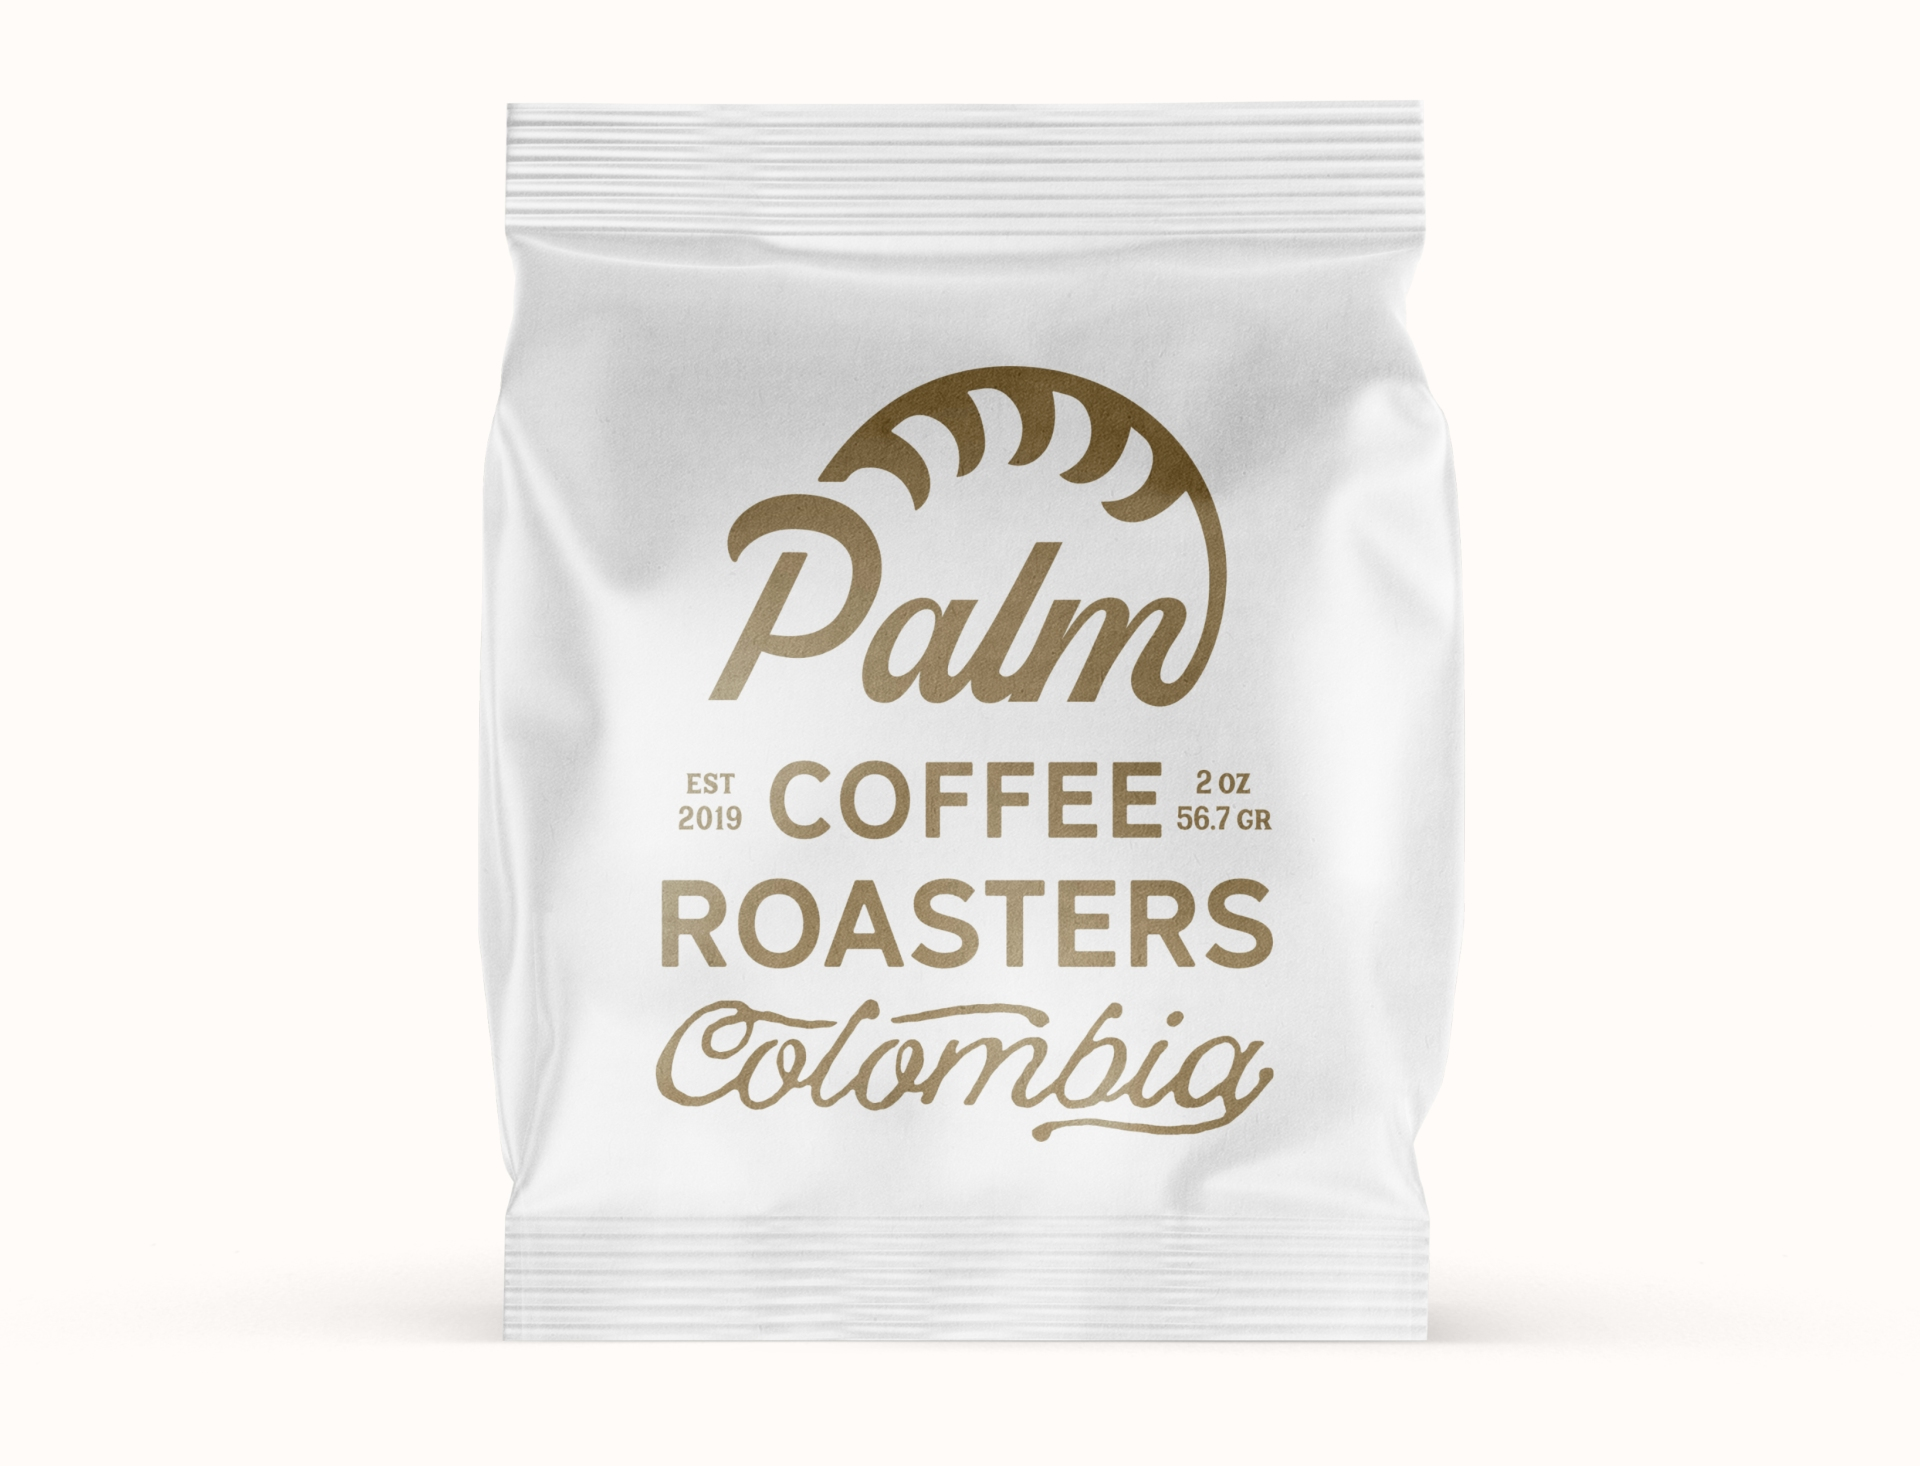 palm-branding-packaging-frac-coffee-minimal-design-graphic-florida-hollywood-espresso-decaf-12-oz-agency-zeki-michael-freelance copy